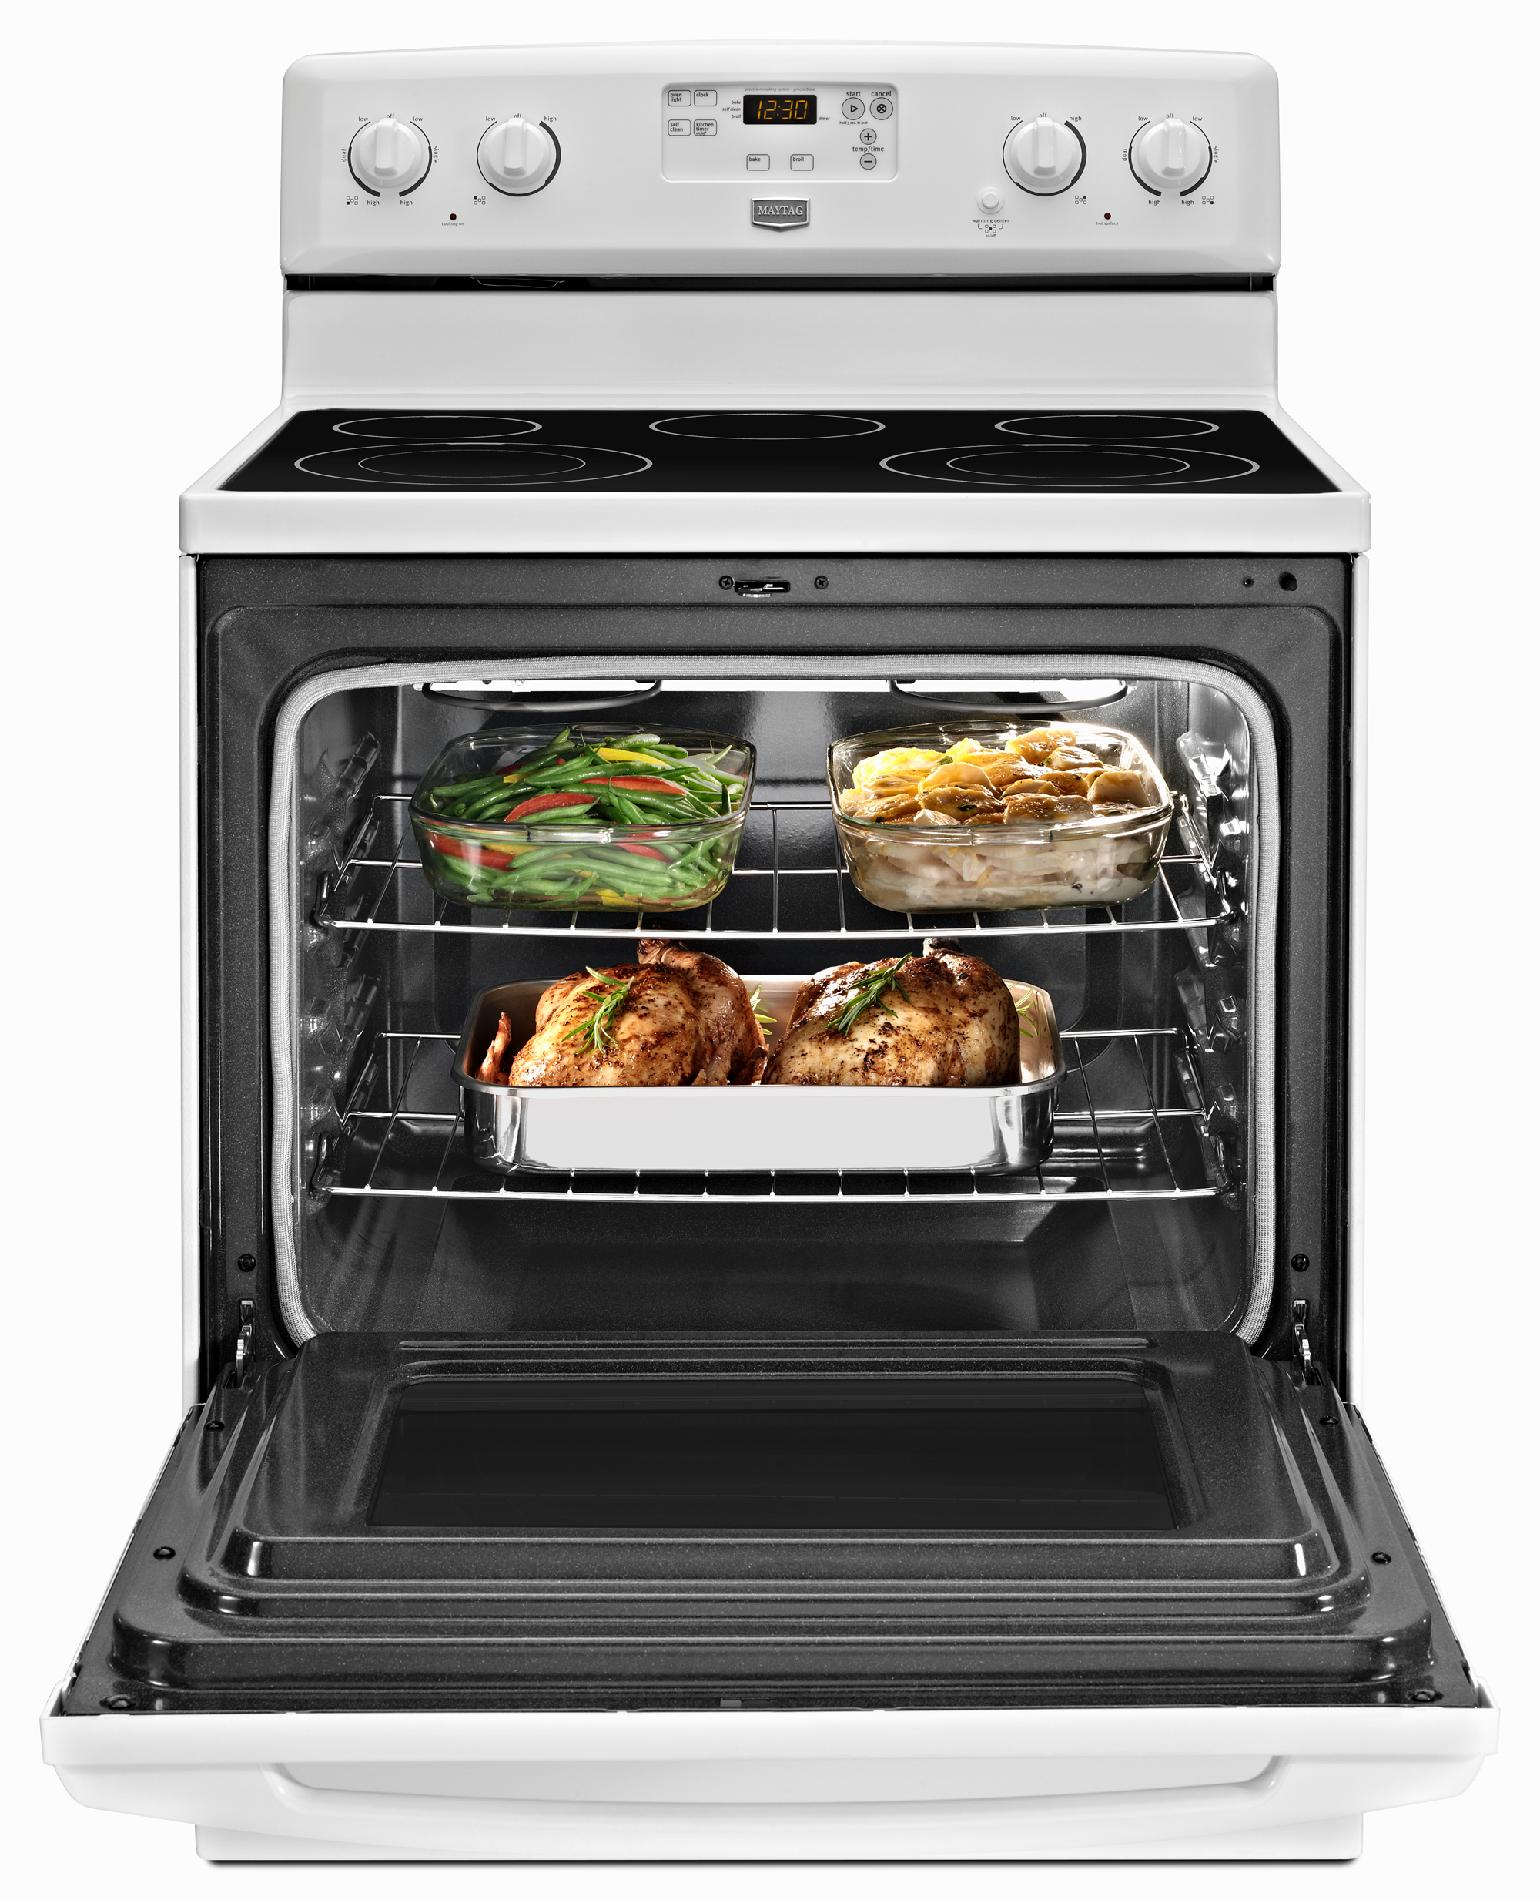 Maytag 5.3 cu. ft. Electric Range w/ 2 Dual-Choice™ Elements - White